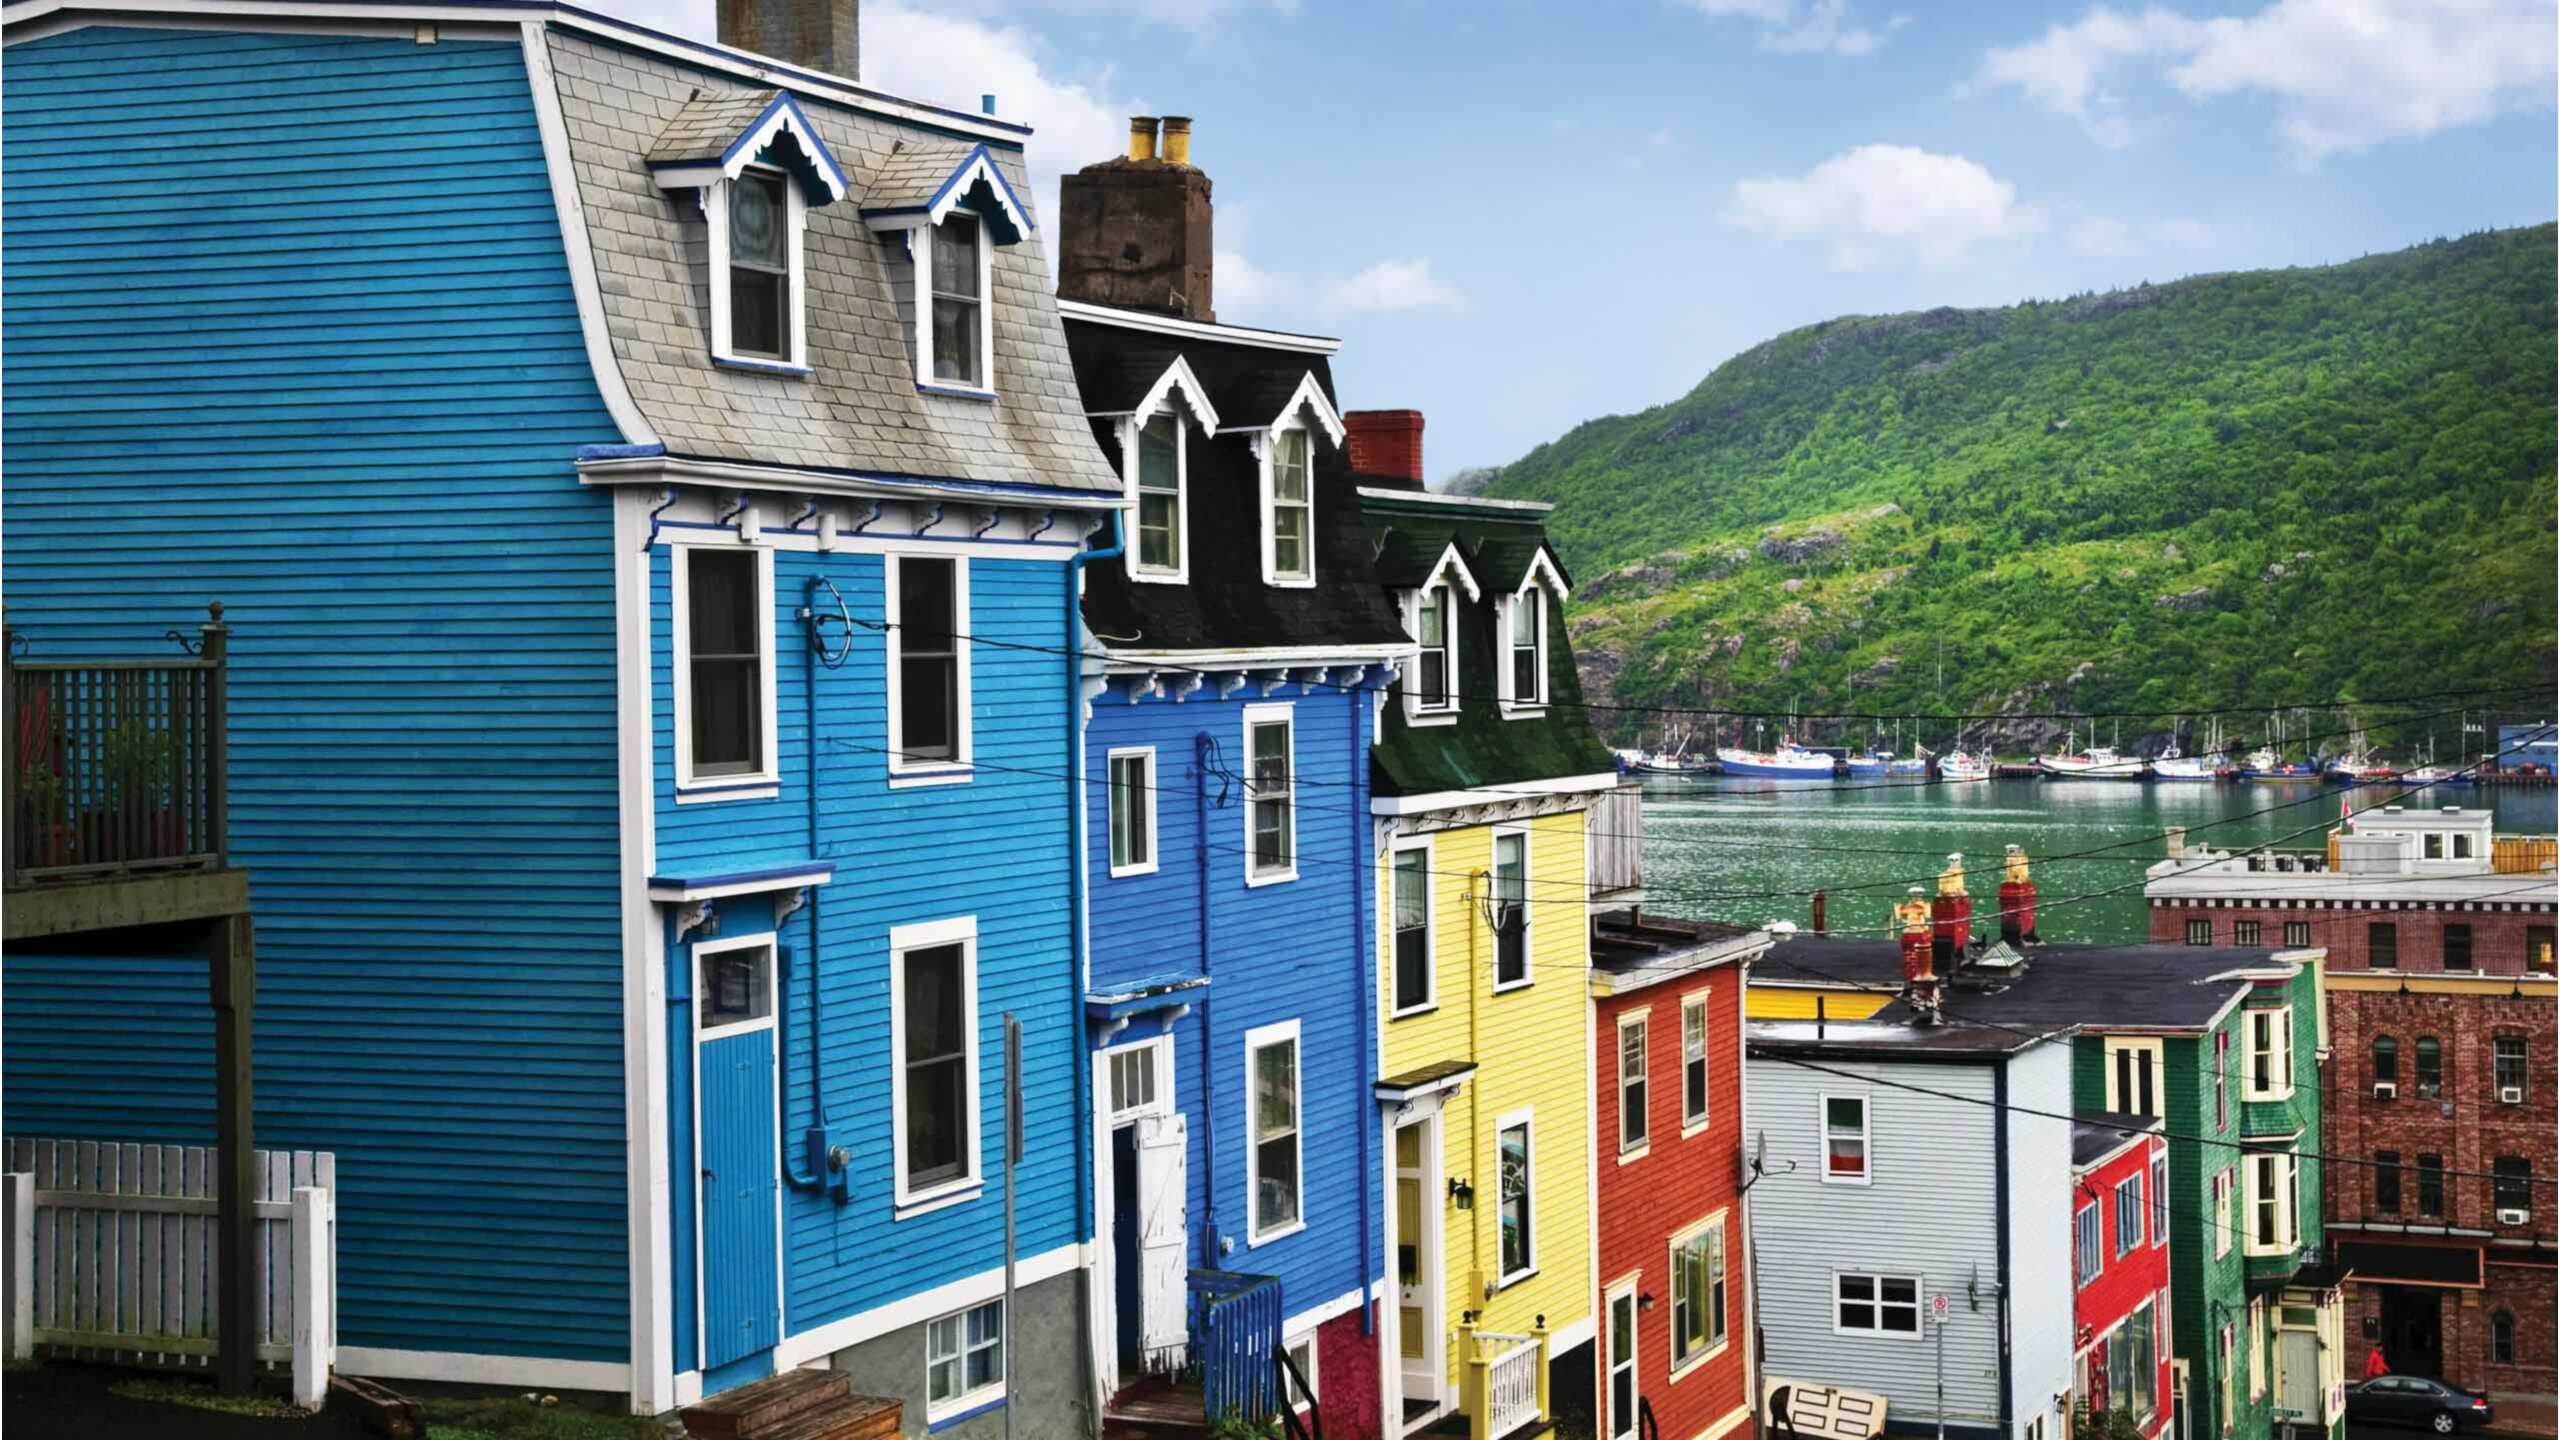 Coulourful houses in a row